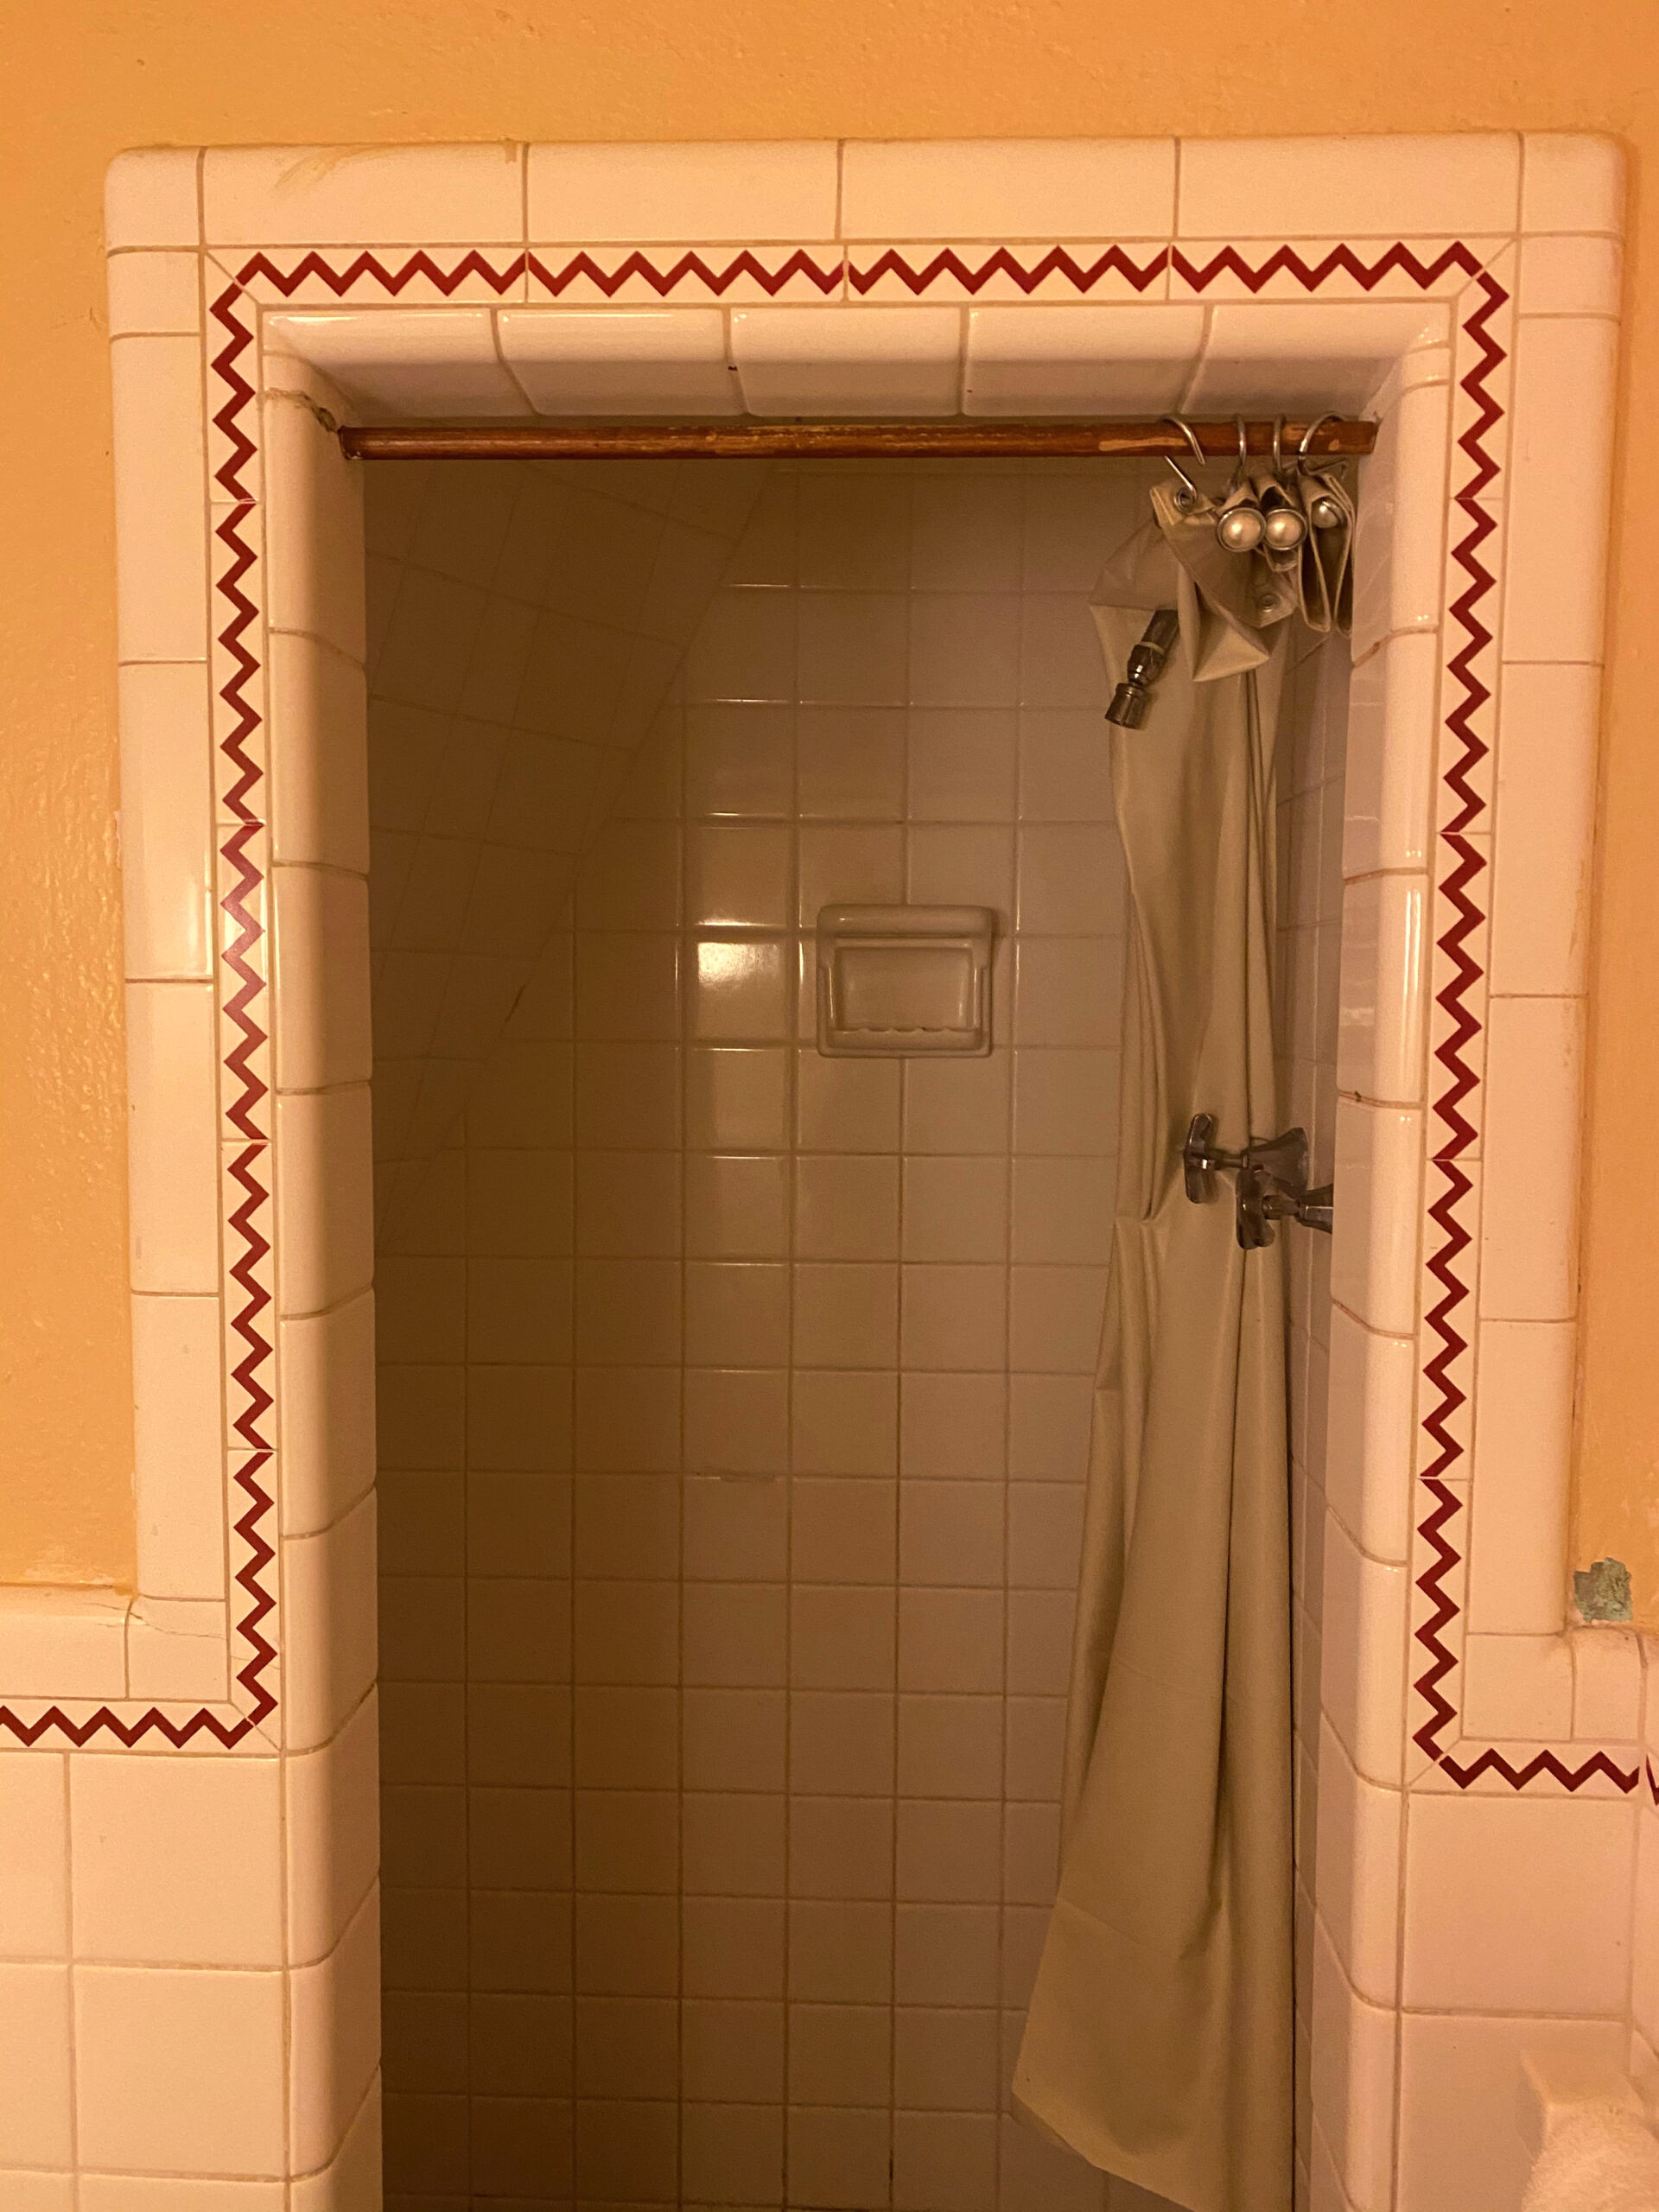 Shower with white and red zigzag tile at the Wigwam Village Inn #2 in Cave City, Kentucky